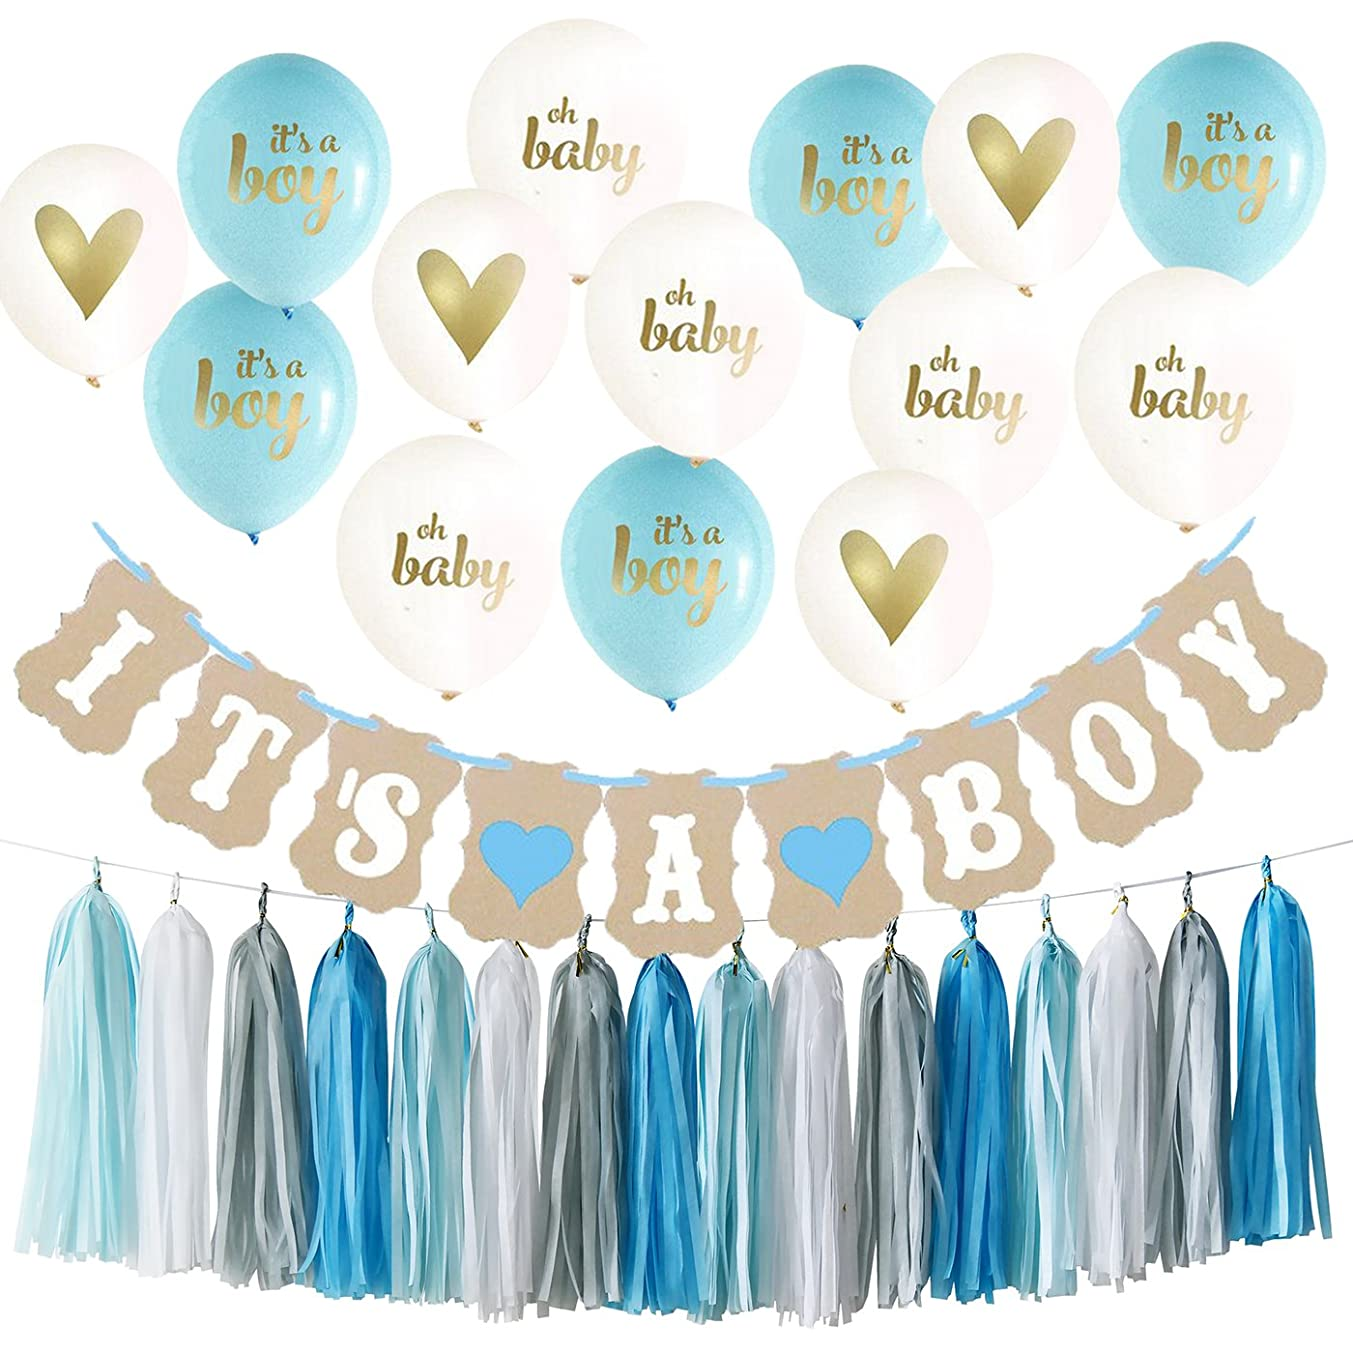 Baby Shower Decorations for Boy Kit It's A Boy Ballons It's A Boy Banner Blue White Grey Tassel Garland for Boy Nursery room Decor Kit Party Decorations Boy Baby Shower Decorations